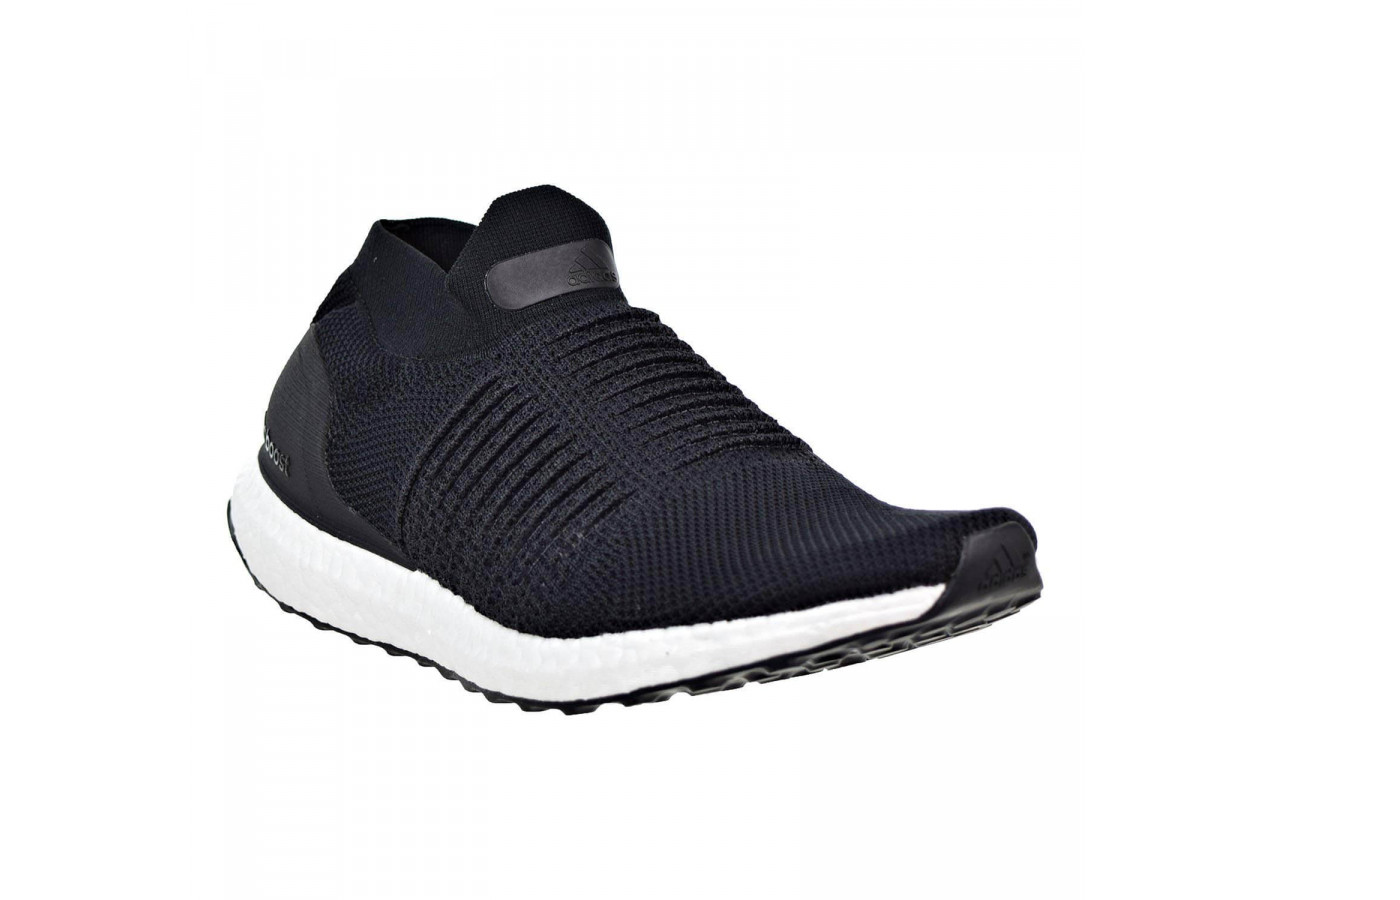 The Adidas Ultra Boost Laceless comes in very few colors.